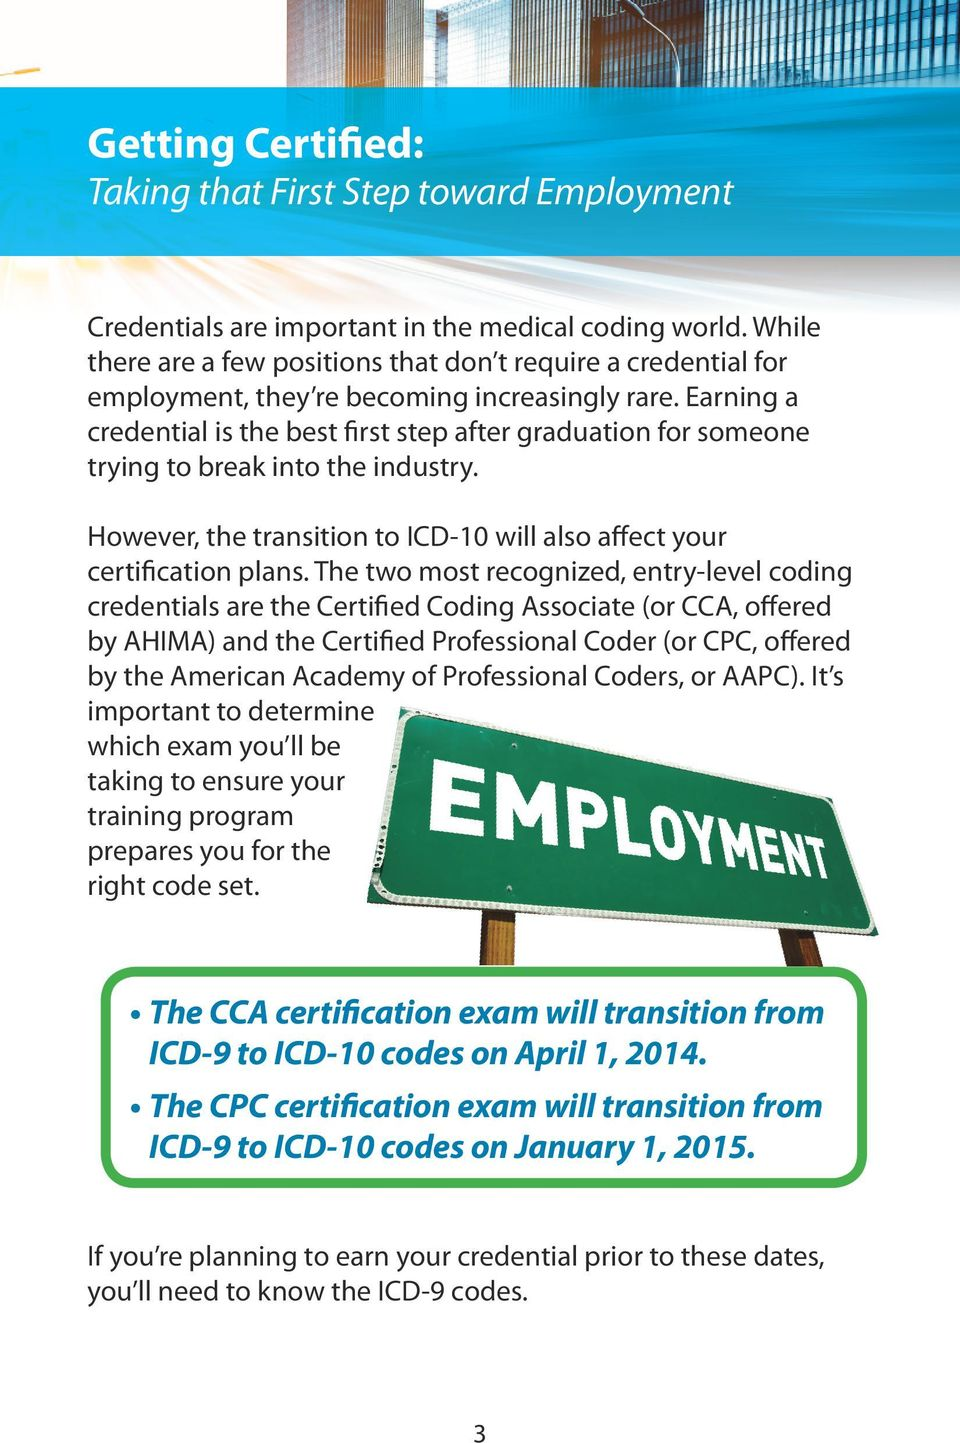 Earning a credential is the best first step after graduation for someone trying to break into the industry. However, the transition to ICD-10 will also affect your certification plans.